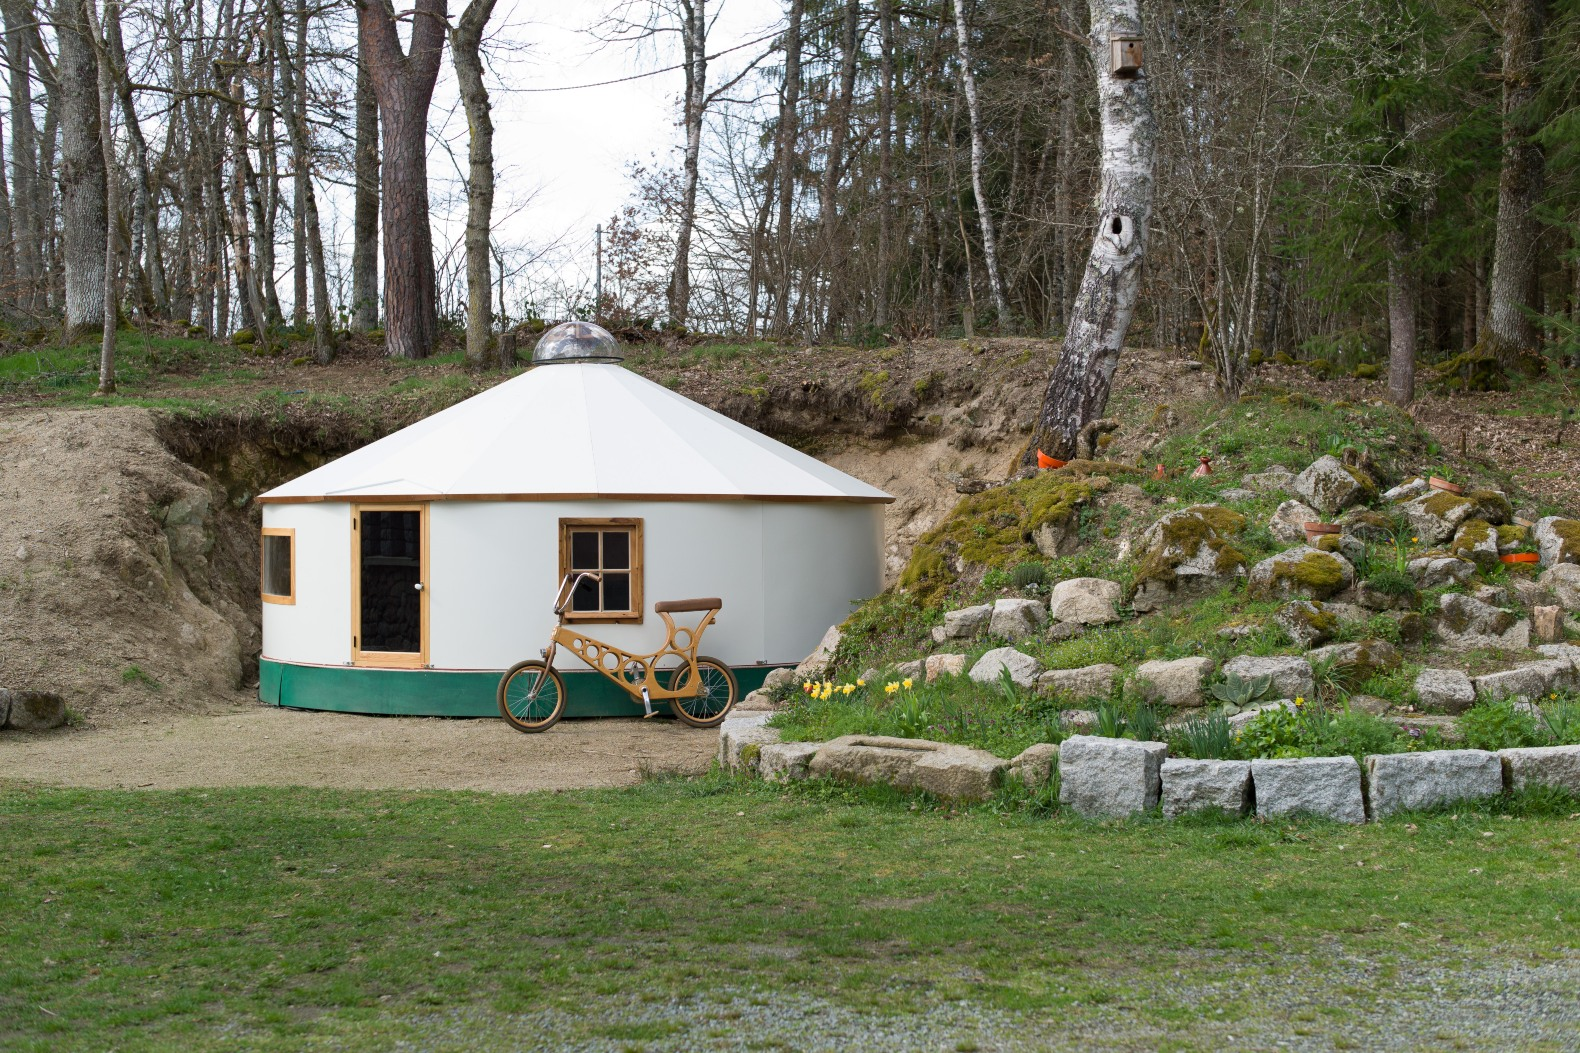 Diy Yurt Could Be The Answer For True Social Distancing